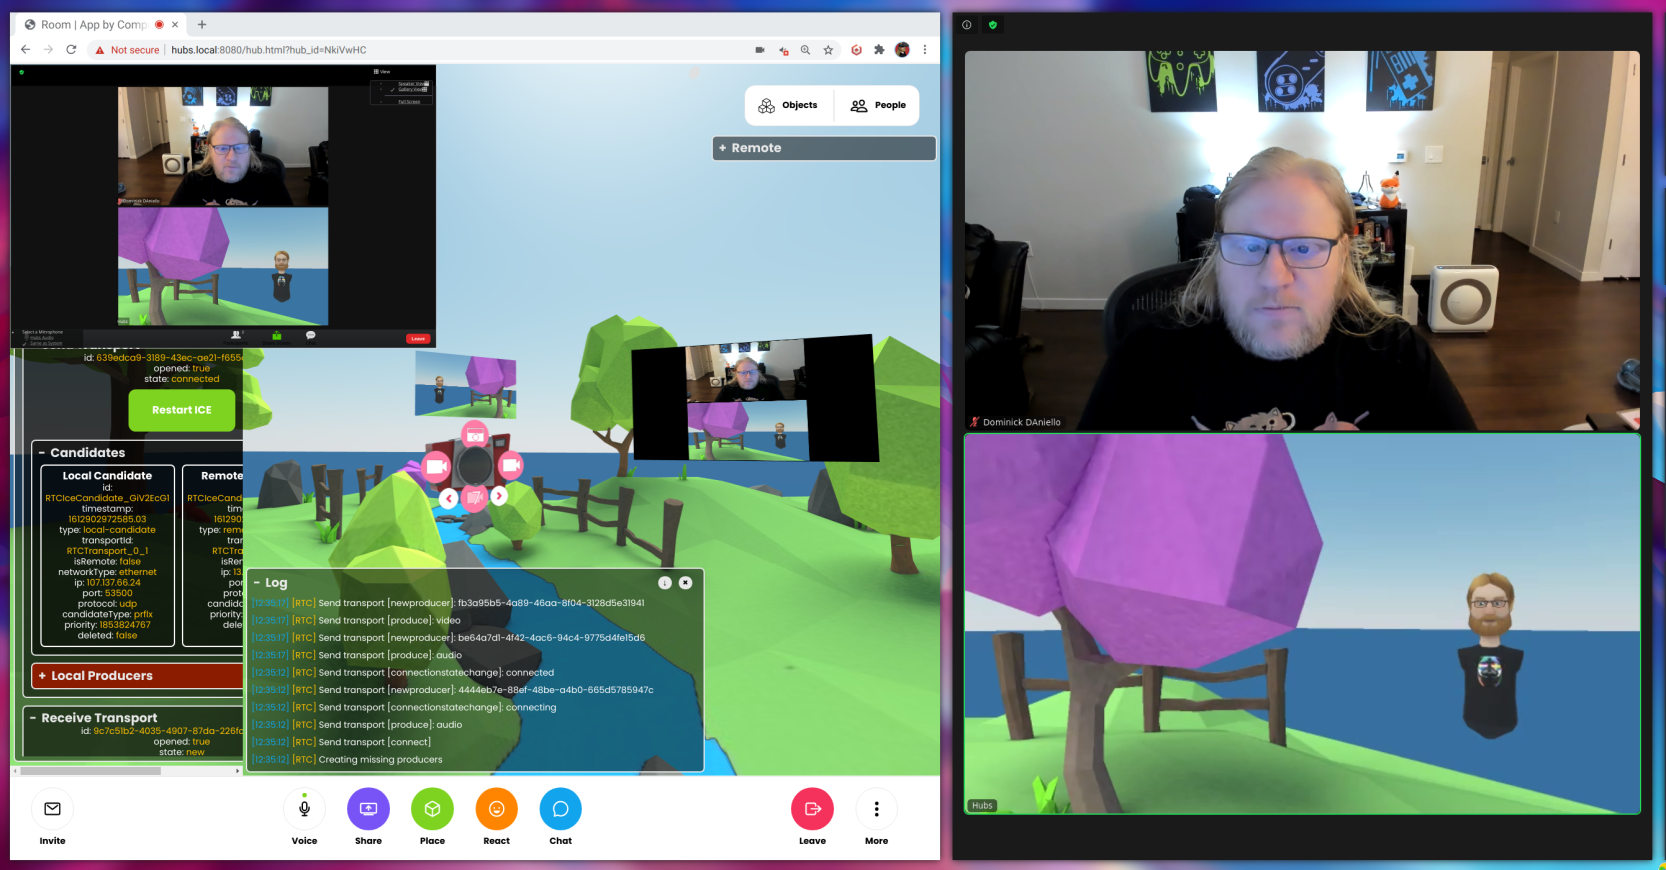 A Hubs room with a Zoom window inside, and a Zoom window with a participant joining as an avatar in Hubs